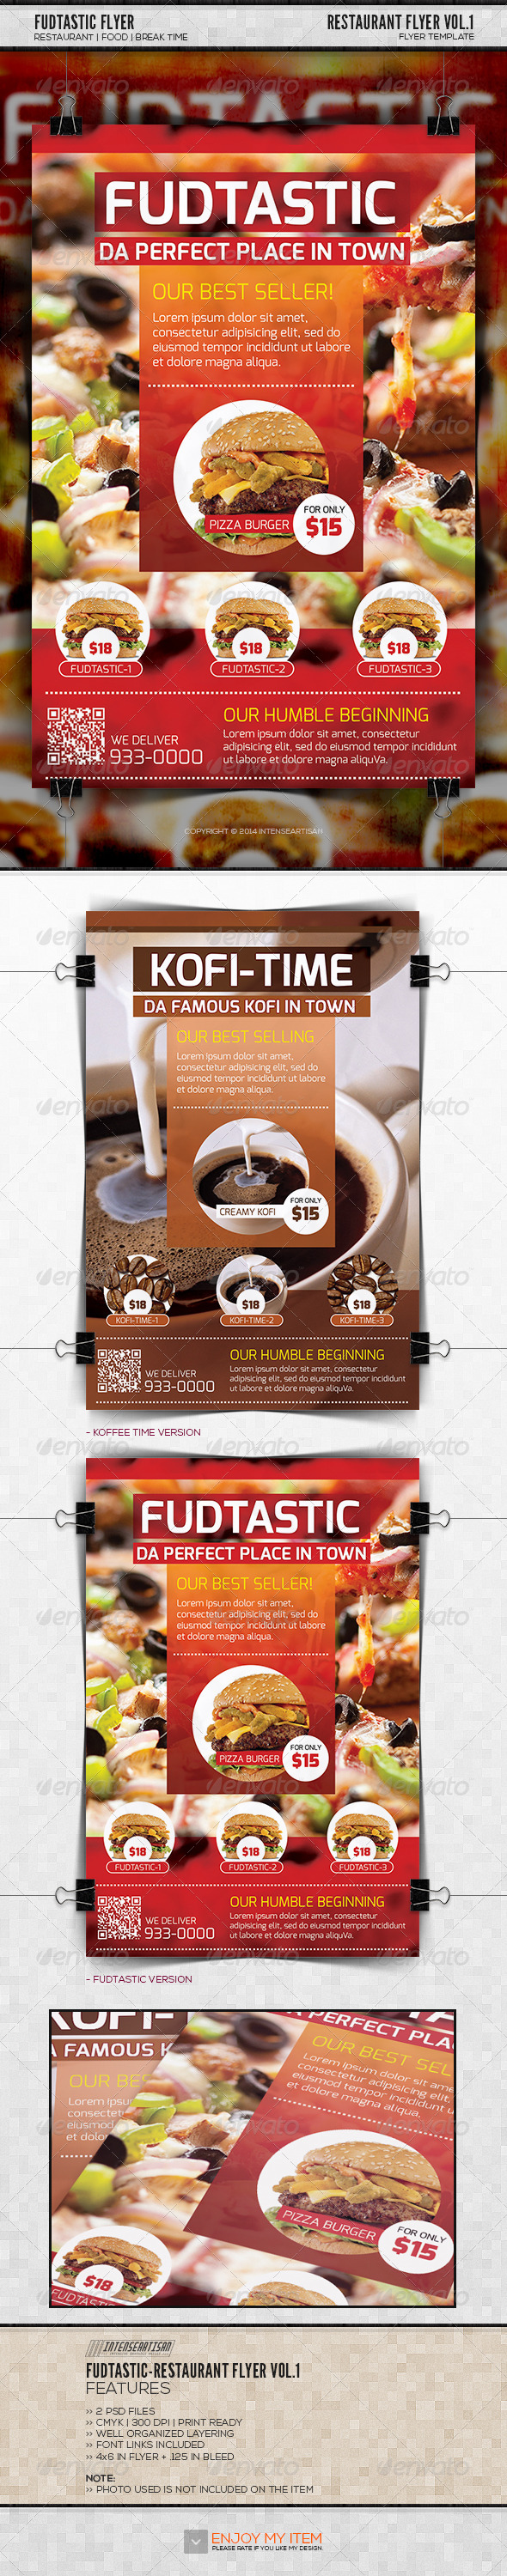 Fudtastic Flyer Template - Restaurant Flyers